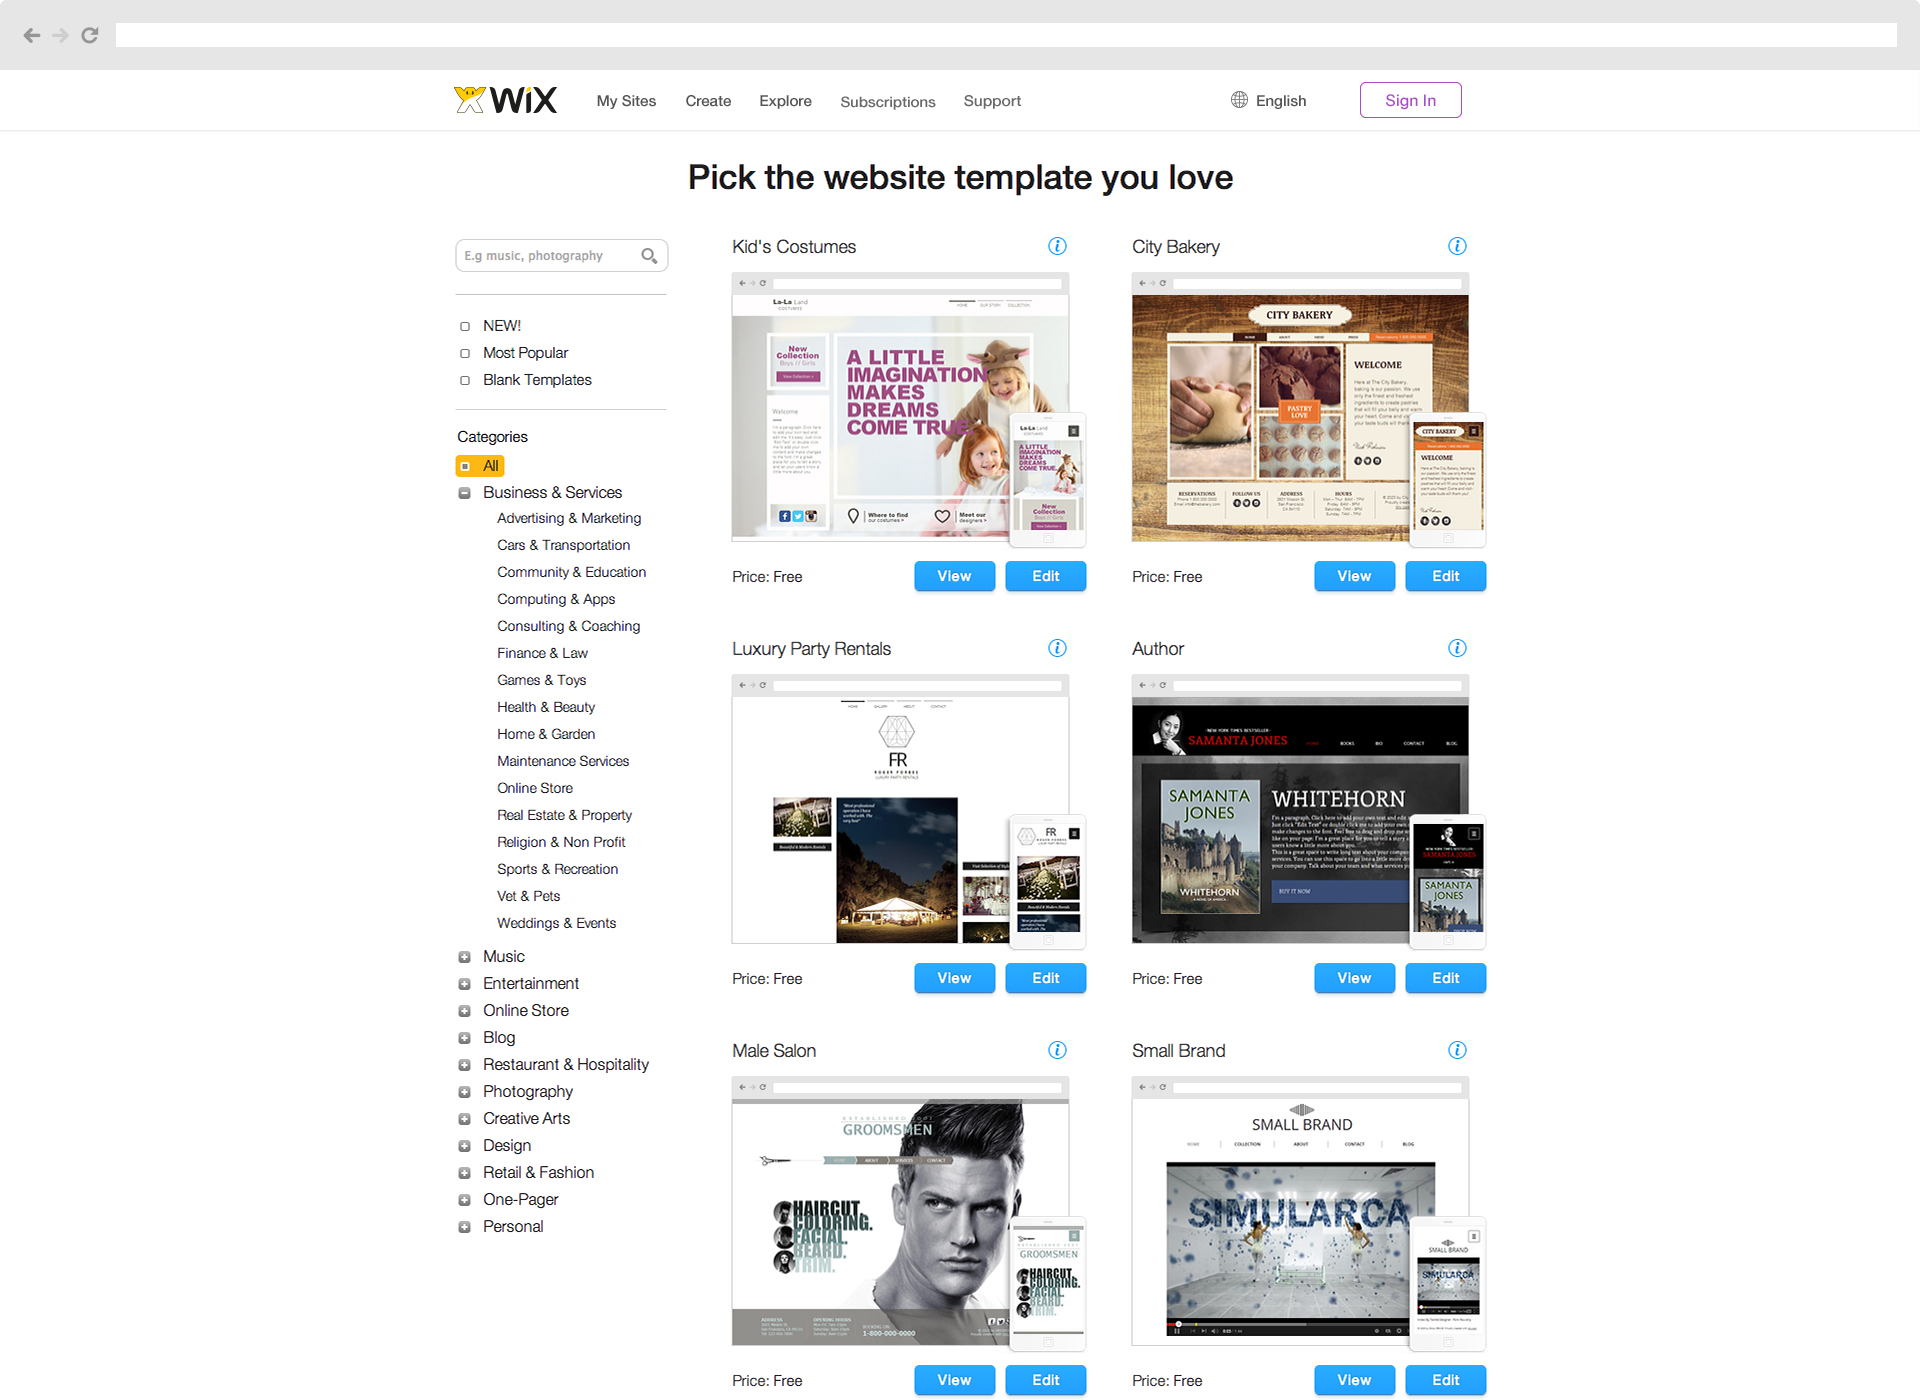 Wix-Create-page.jpg